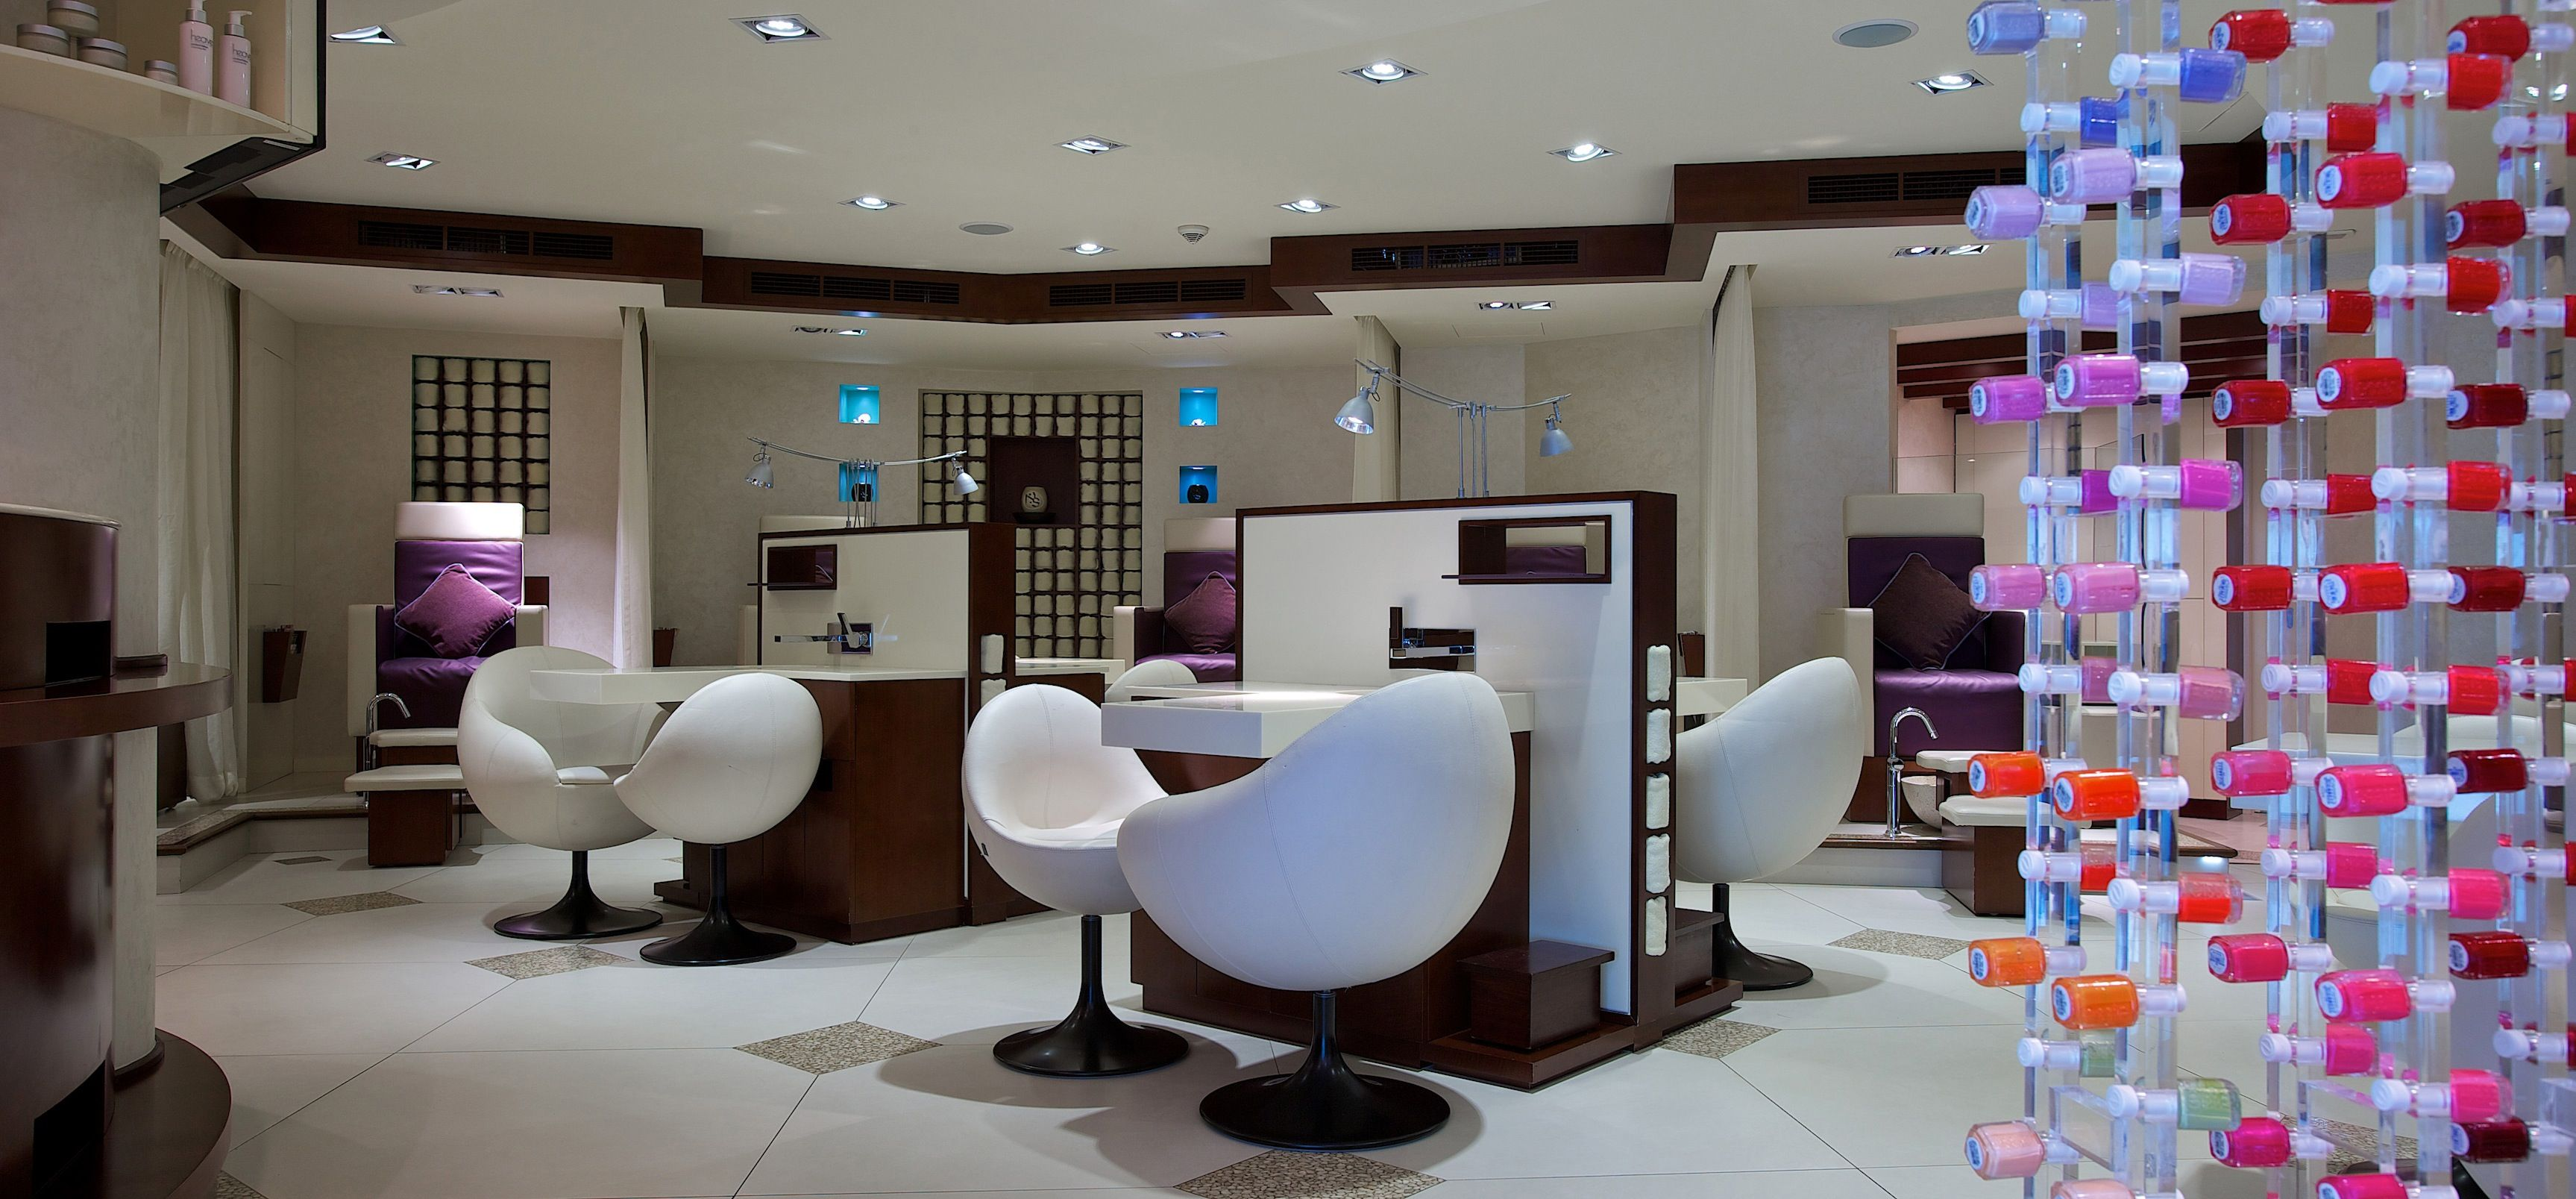 The Nail Spa Arabian Ranches www.thenailspa.com | The Nail Spa ...